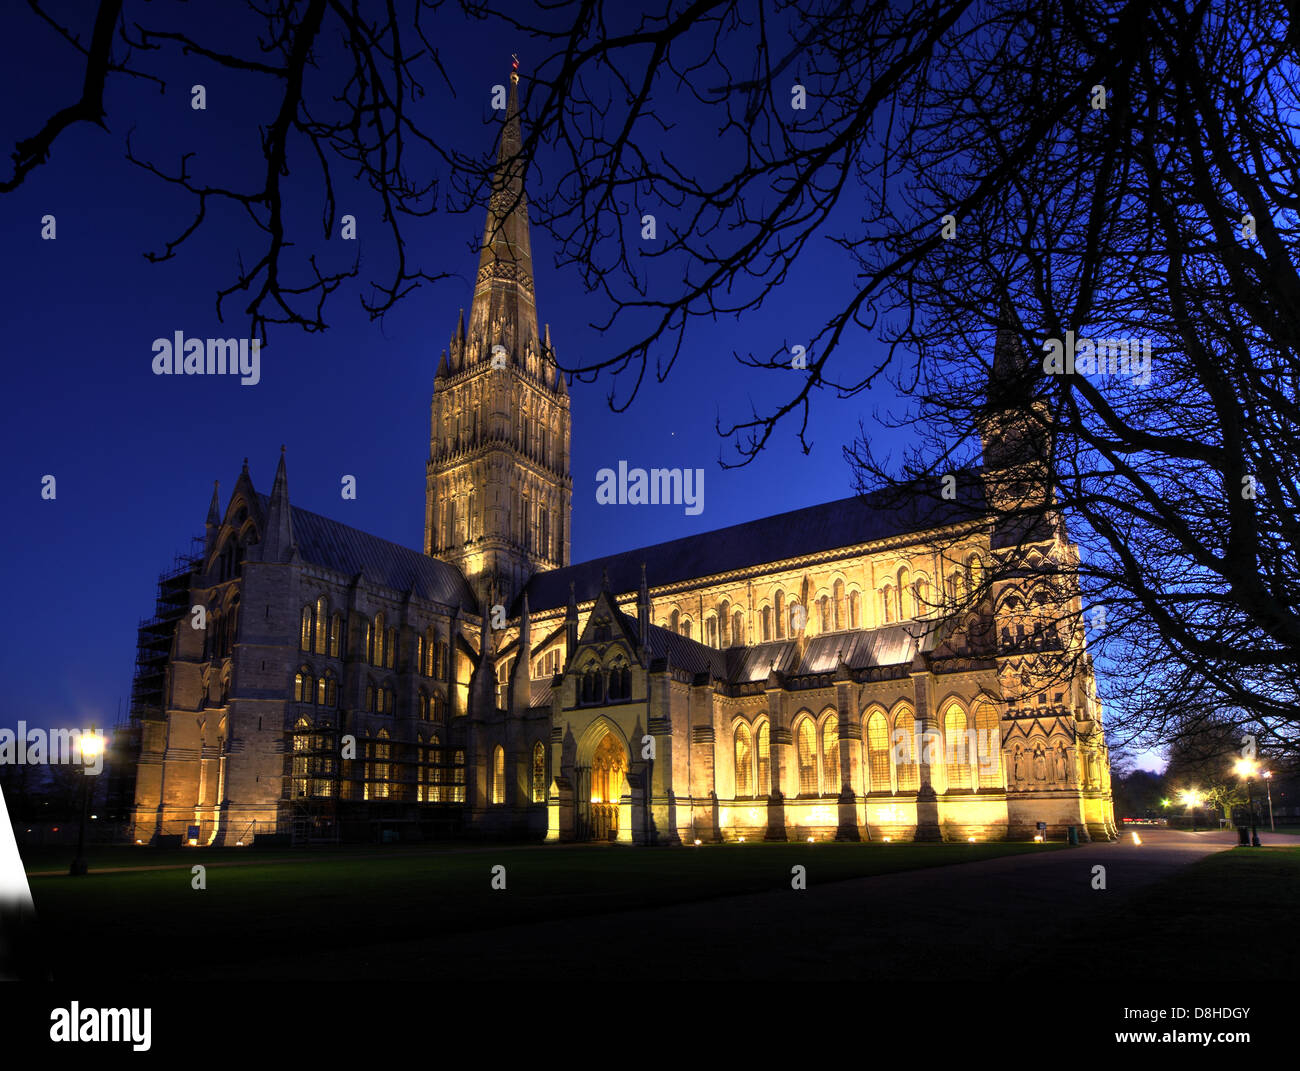 night,shot,Christmas,Xmas,lit,up,tripod,wide,lens,nightlights,lights,tree,beautiful,tourist,travel,visit,wiltshire,county,west,country,England,UK,GB,Great,Britain,couty,town,market,council,local,authority,guided,tours,tour,medieval,cathedrals,Blessed,Virgin,Mary,is an Anglican SP12EJ building,Gotonysmith 6 The Close,Salisbury,Wiltshire,England,UK,SP1,2EJ,exterior,Architects,Architect,George,Gilbert,Scott,Richard,Poore,James,Wyatt,Elias,of,Dereham,gothic,close,June,Osborne,Buy Pictures of,Buy Images Of